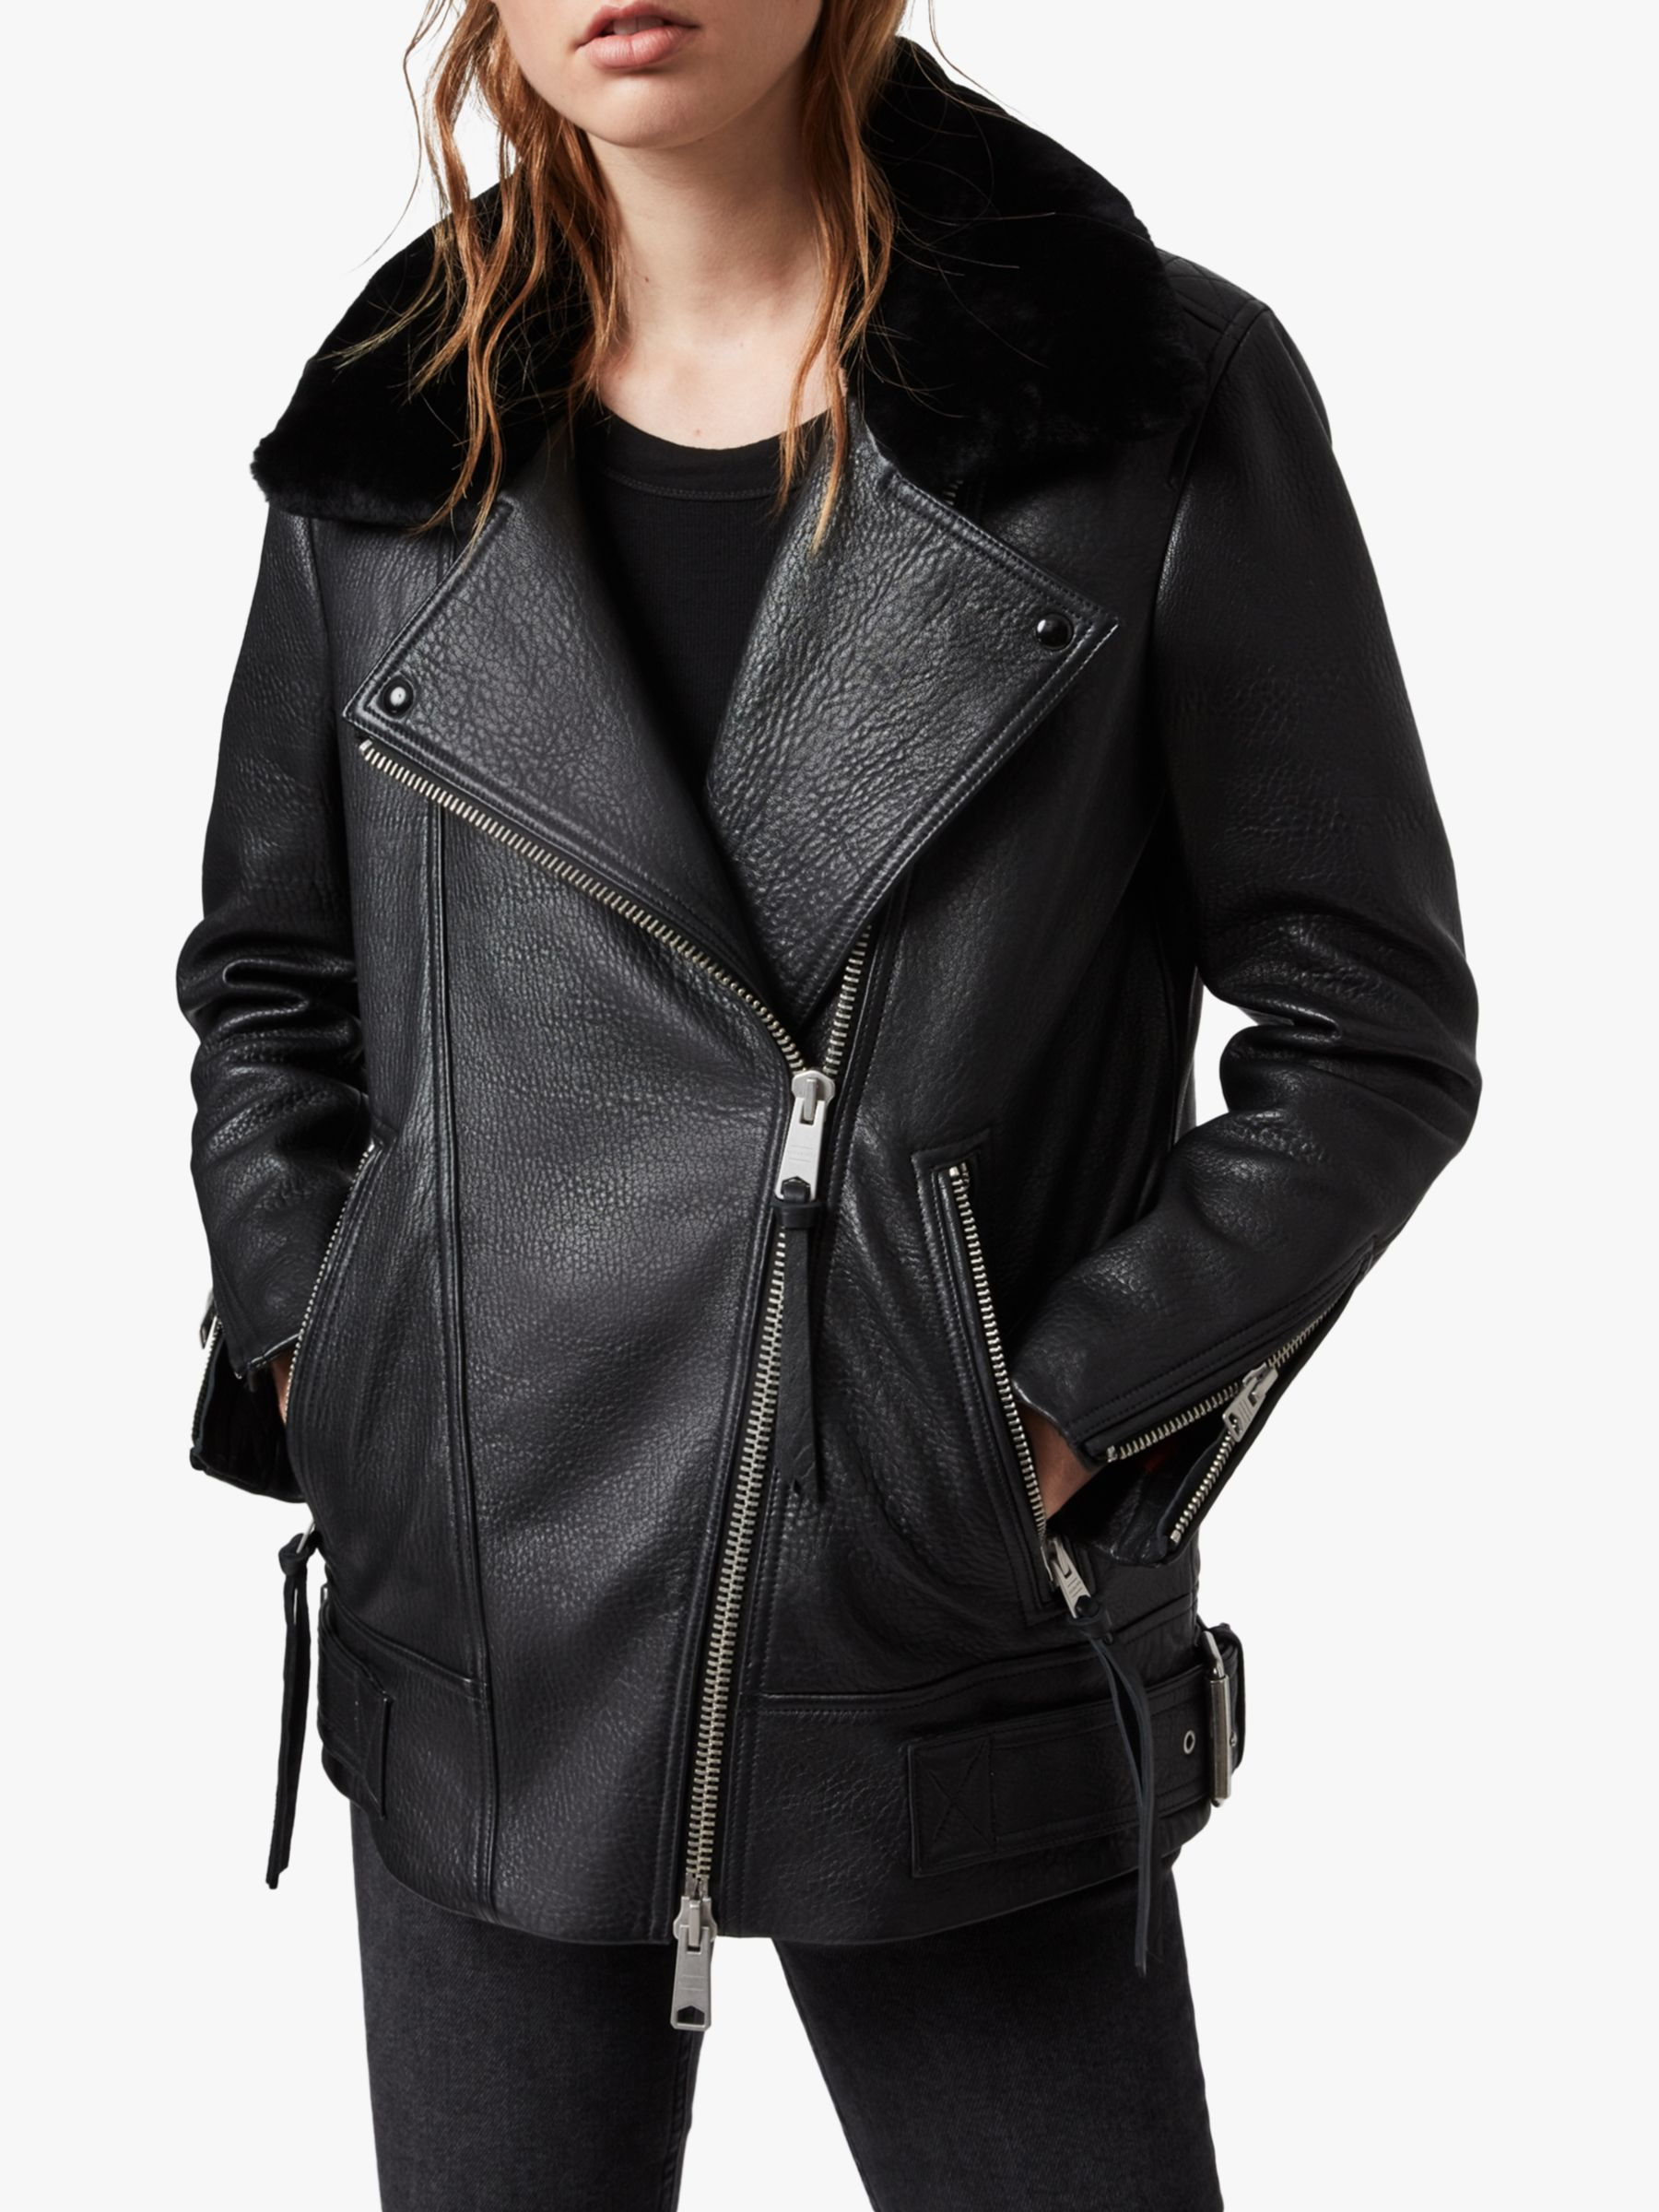 AllSaints AllSaints Maizie Shearling Collar Leather Biker Jacket, Black